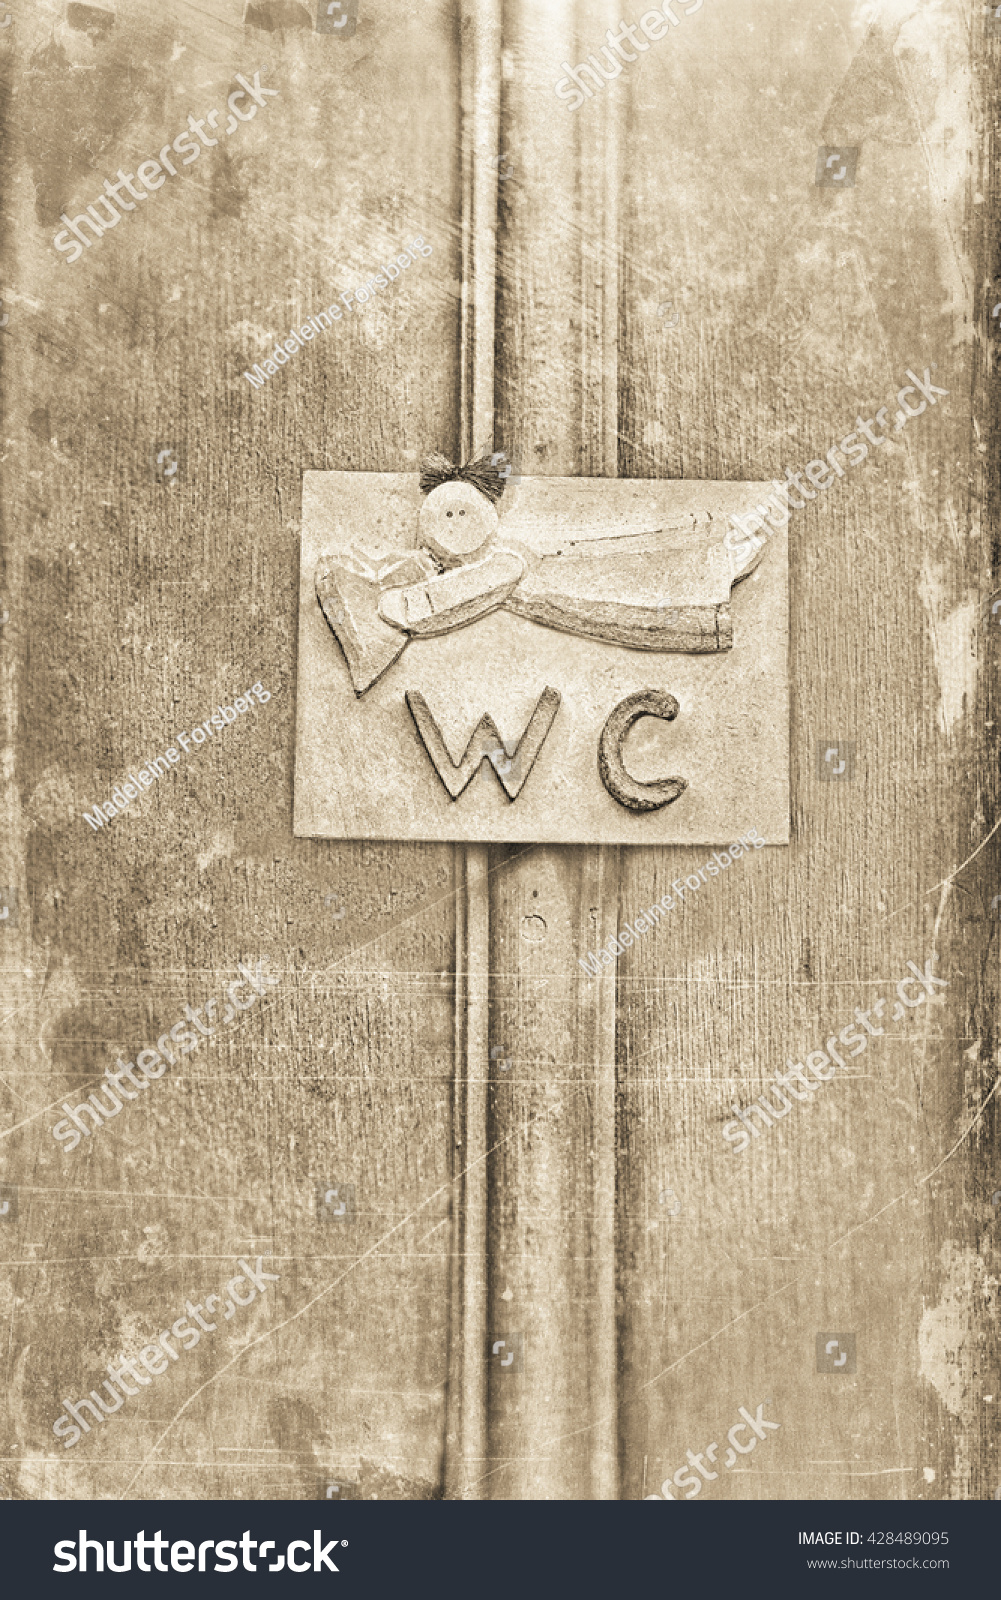 privy toilet sign on wooden door stock photo 428489095 shutterstock. Black Bedroom Furniture Sets. Home Design Ideas